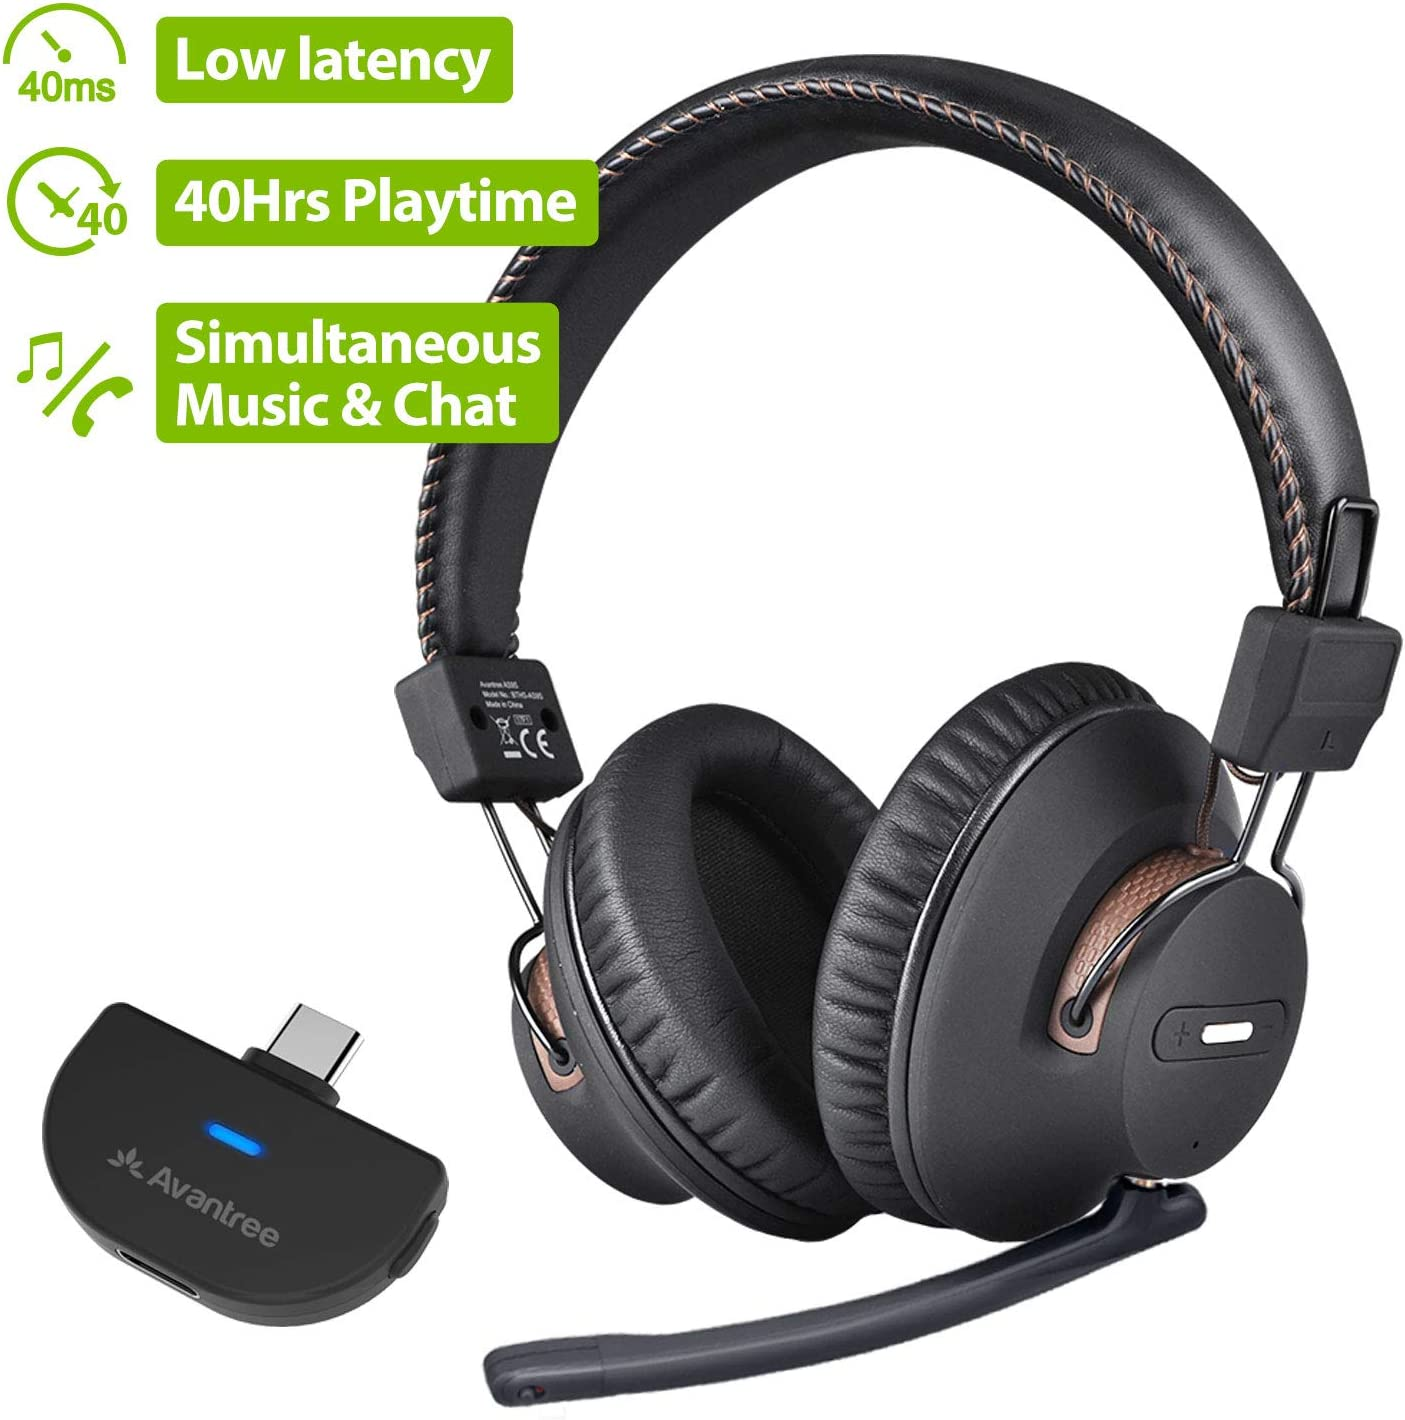 Avantree Bluetooth 5.0 USB C Audio Transmitter & Wireless Gaming Headphones Set for Nintendo Switch, PC Desktop Computer, Plug & Play, Chat & Music Simultaneously, No Delay, 40hrs Play Time - C519M